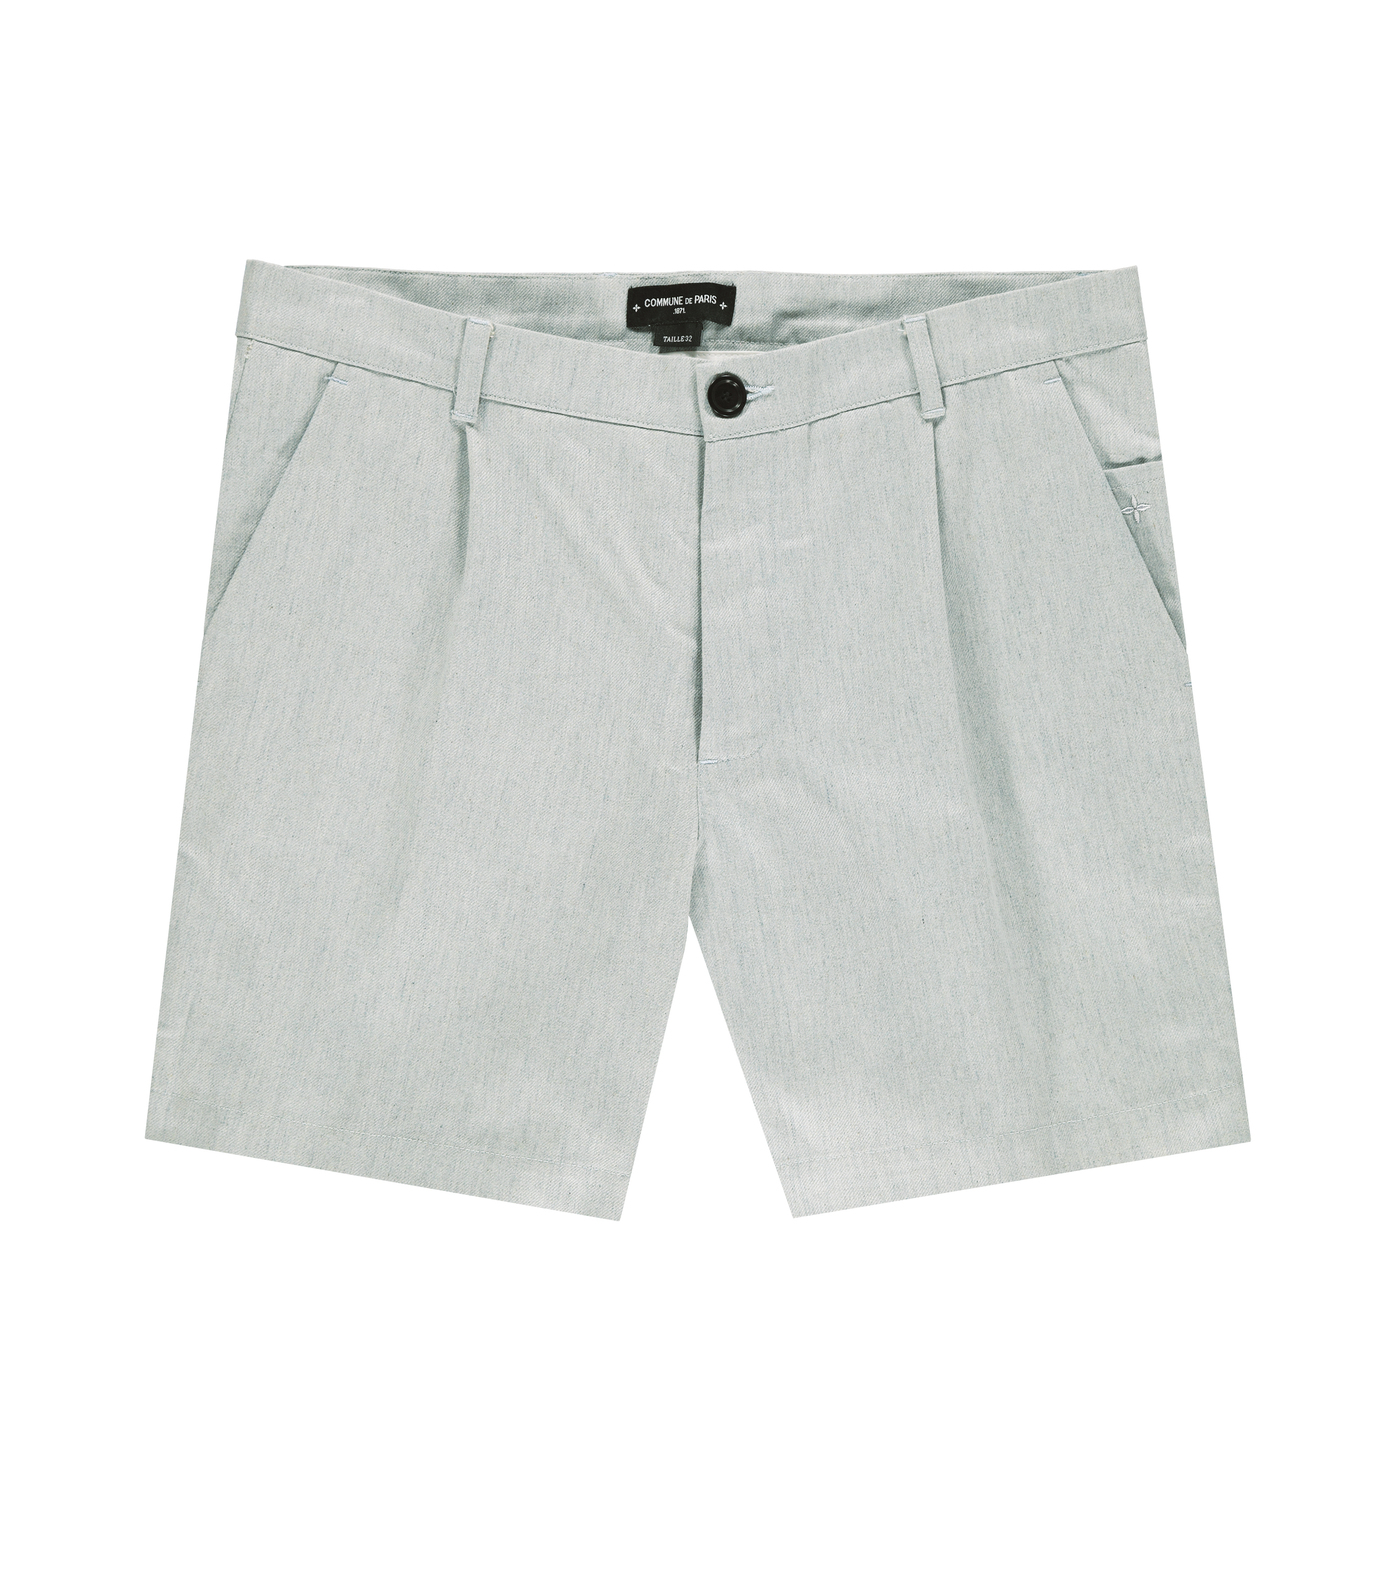 Shortpants SP5 - Light blue